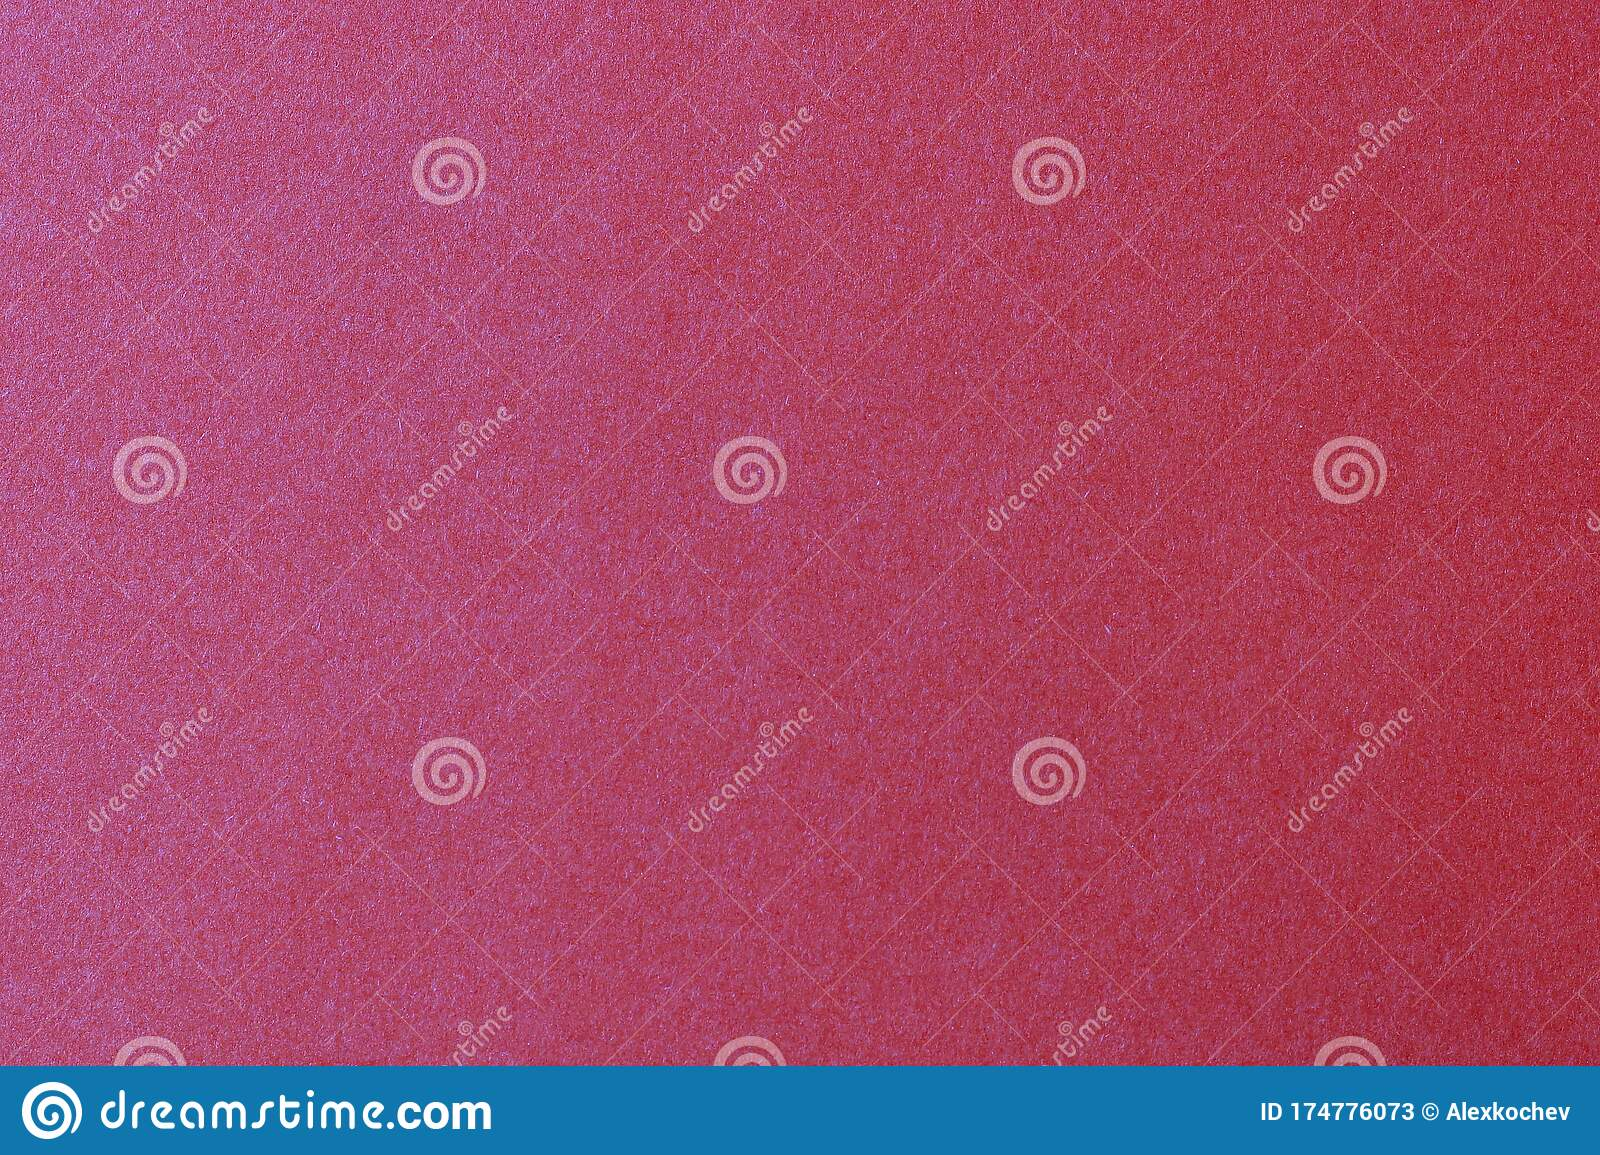 Solid Color Background Shades Of Red Textured Matte Surface Stock Image Image Of Blur Background 174776073